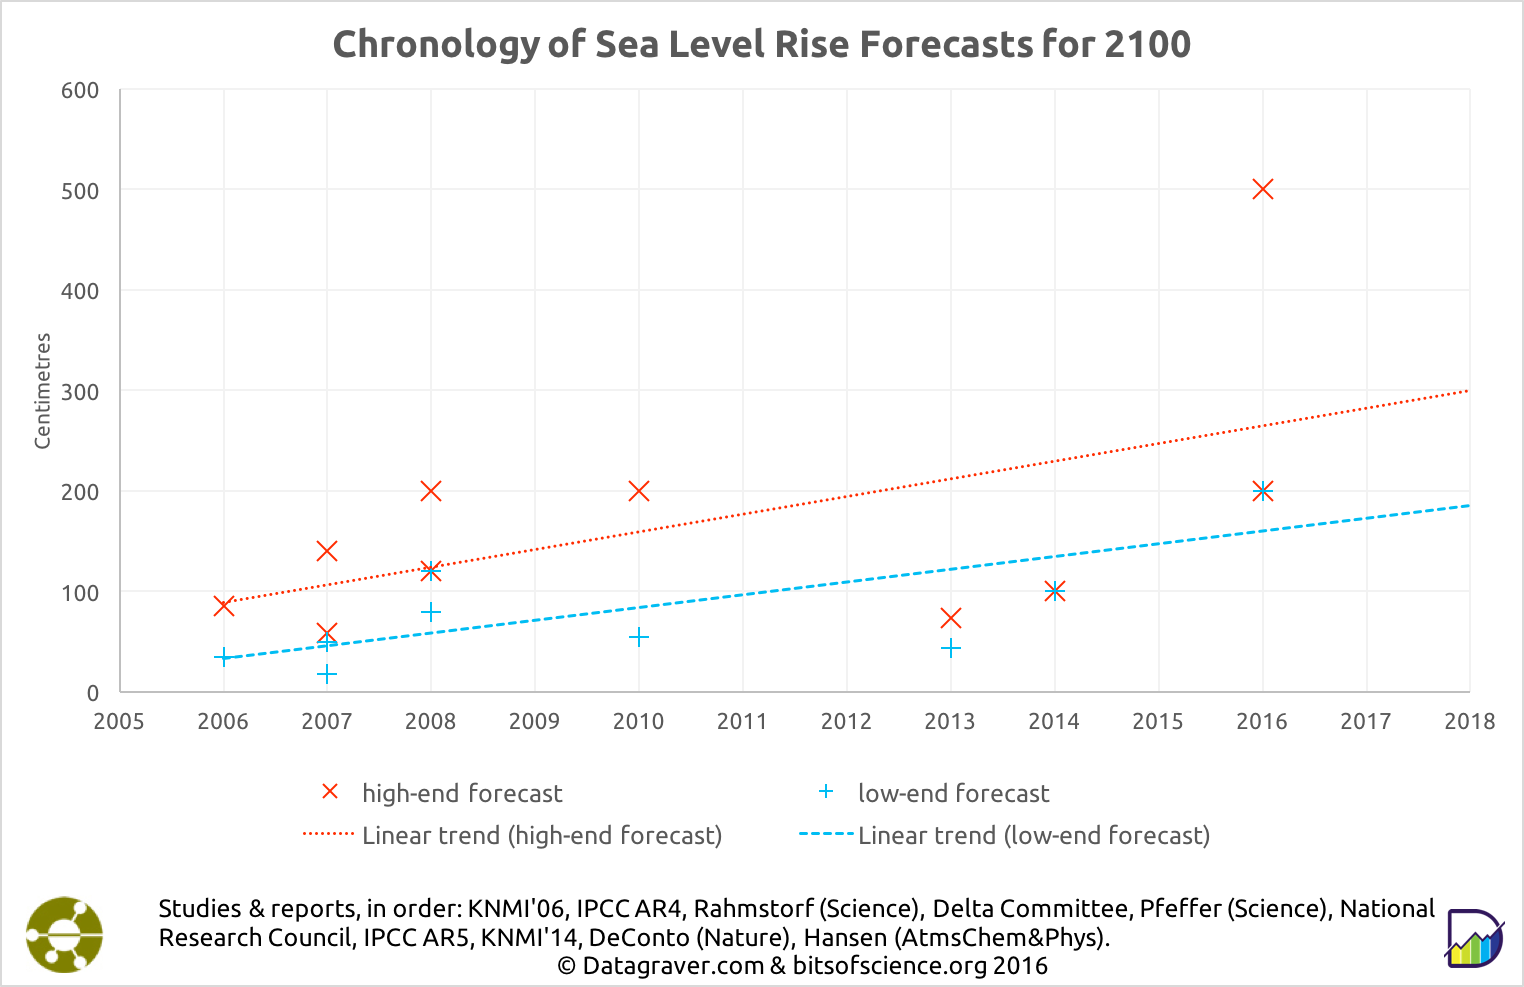 Overview sea level rise forecasts for 2100 - increasing